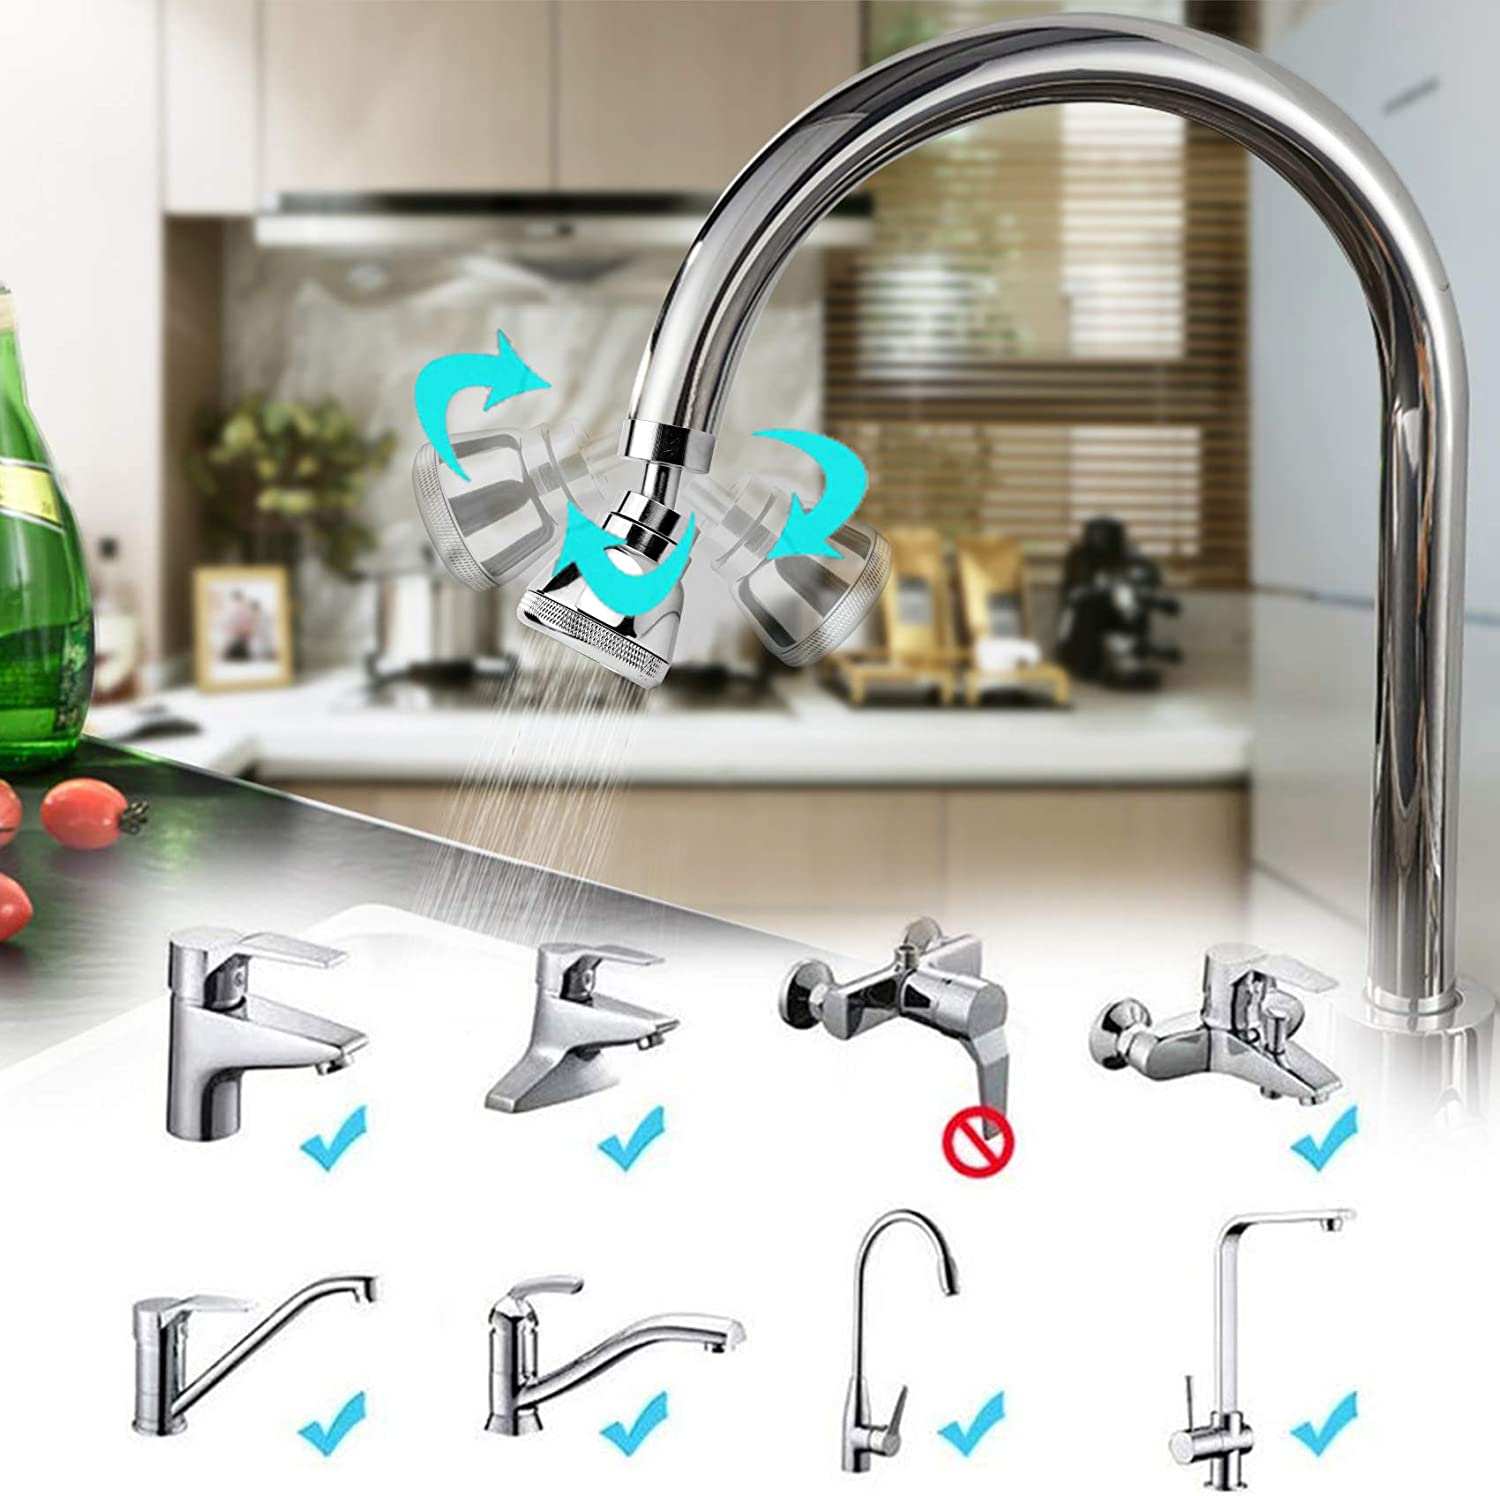 Buy 2021 Newest Swivel Kitchen Sink Faucet Aerator Big Angle Solid Copper High Pressure Kitchen Tap Head Large Flow Non Slip Faucet Sprayer Head Anti Splash Faucet Nozzle No Leaking 3 Modes Adjustable Online In